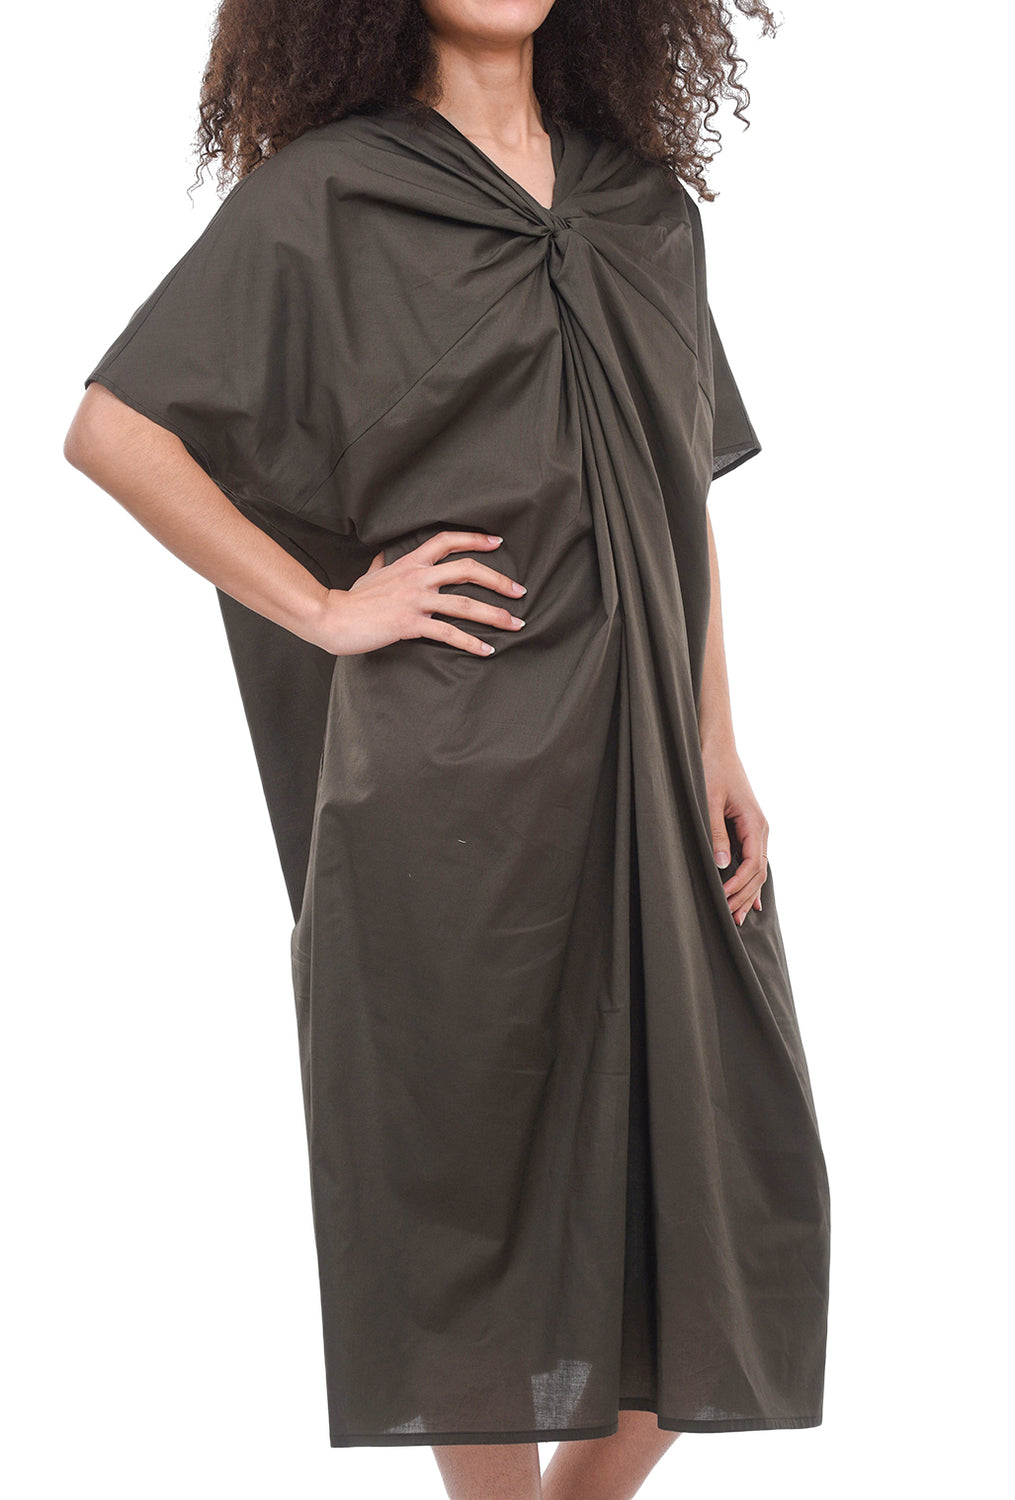 Mizuiro Ind Pinched Neck Dress, Gray-Brown